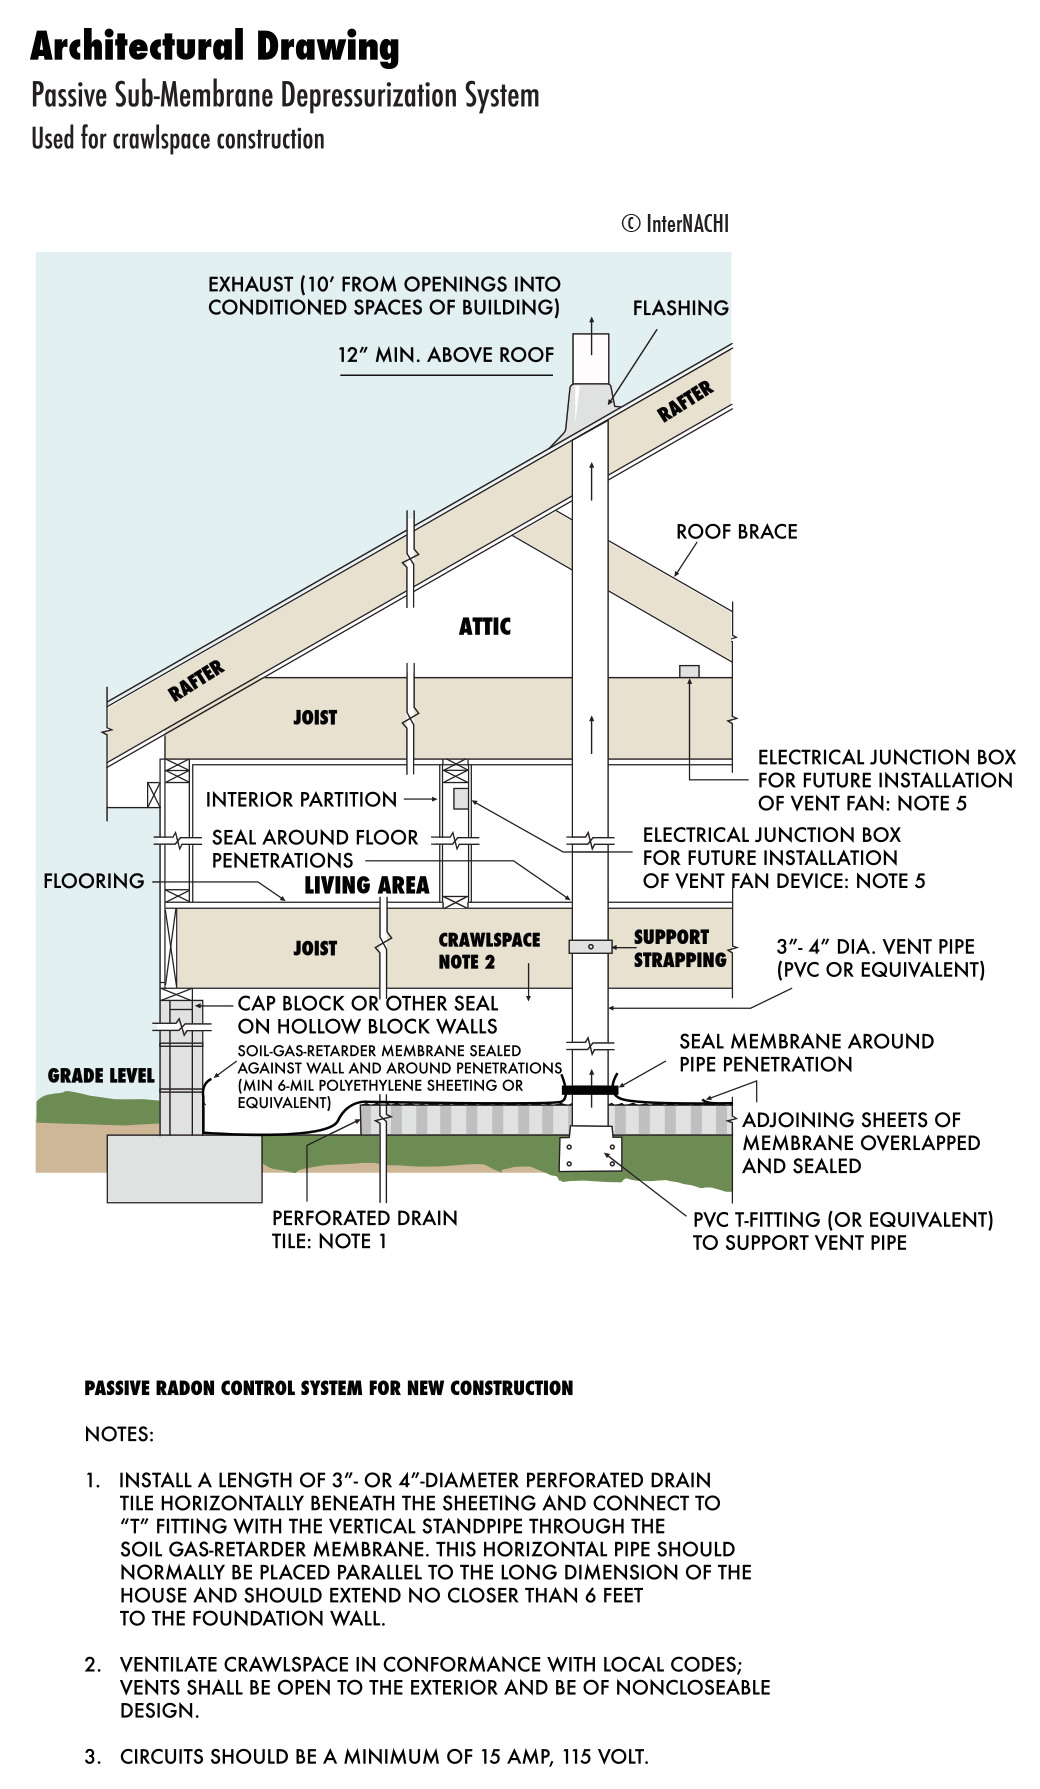 Architectural drawing of crawlspace depressurization radon system.